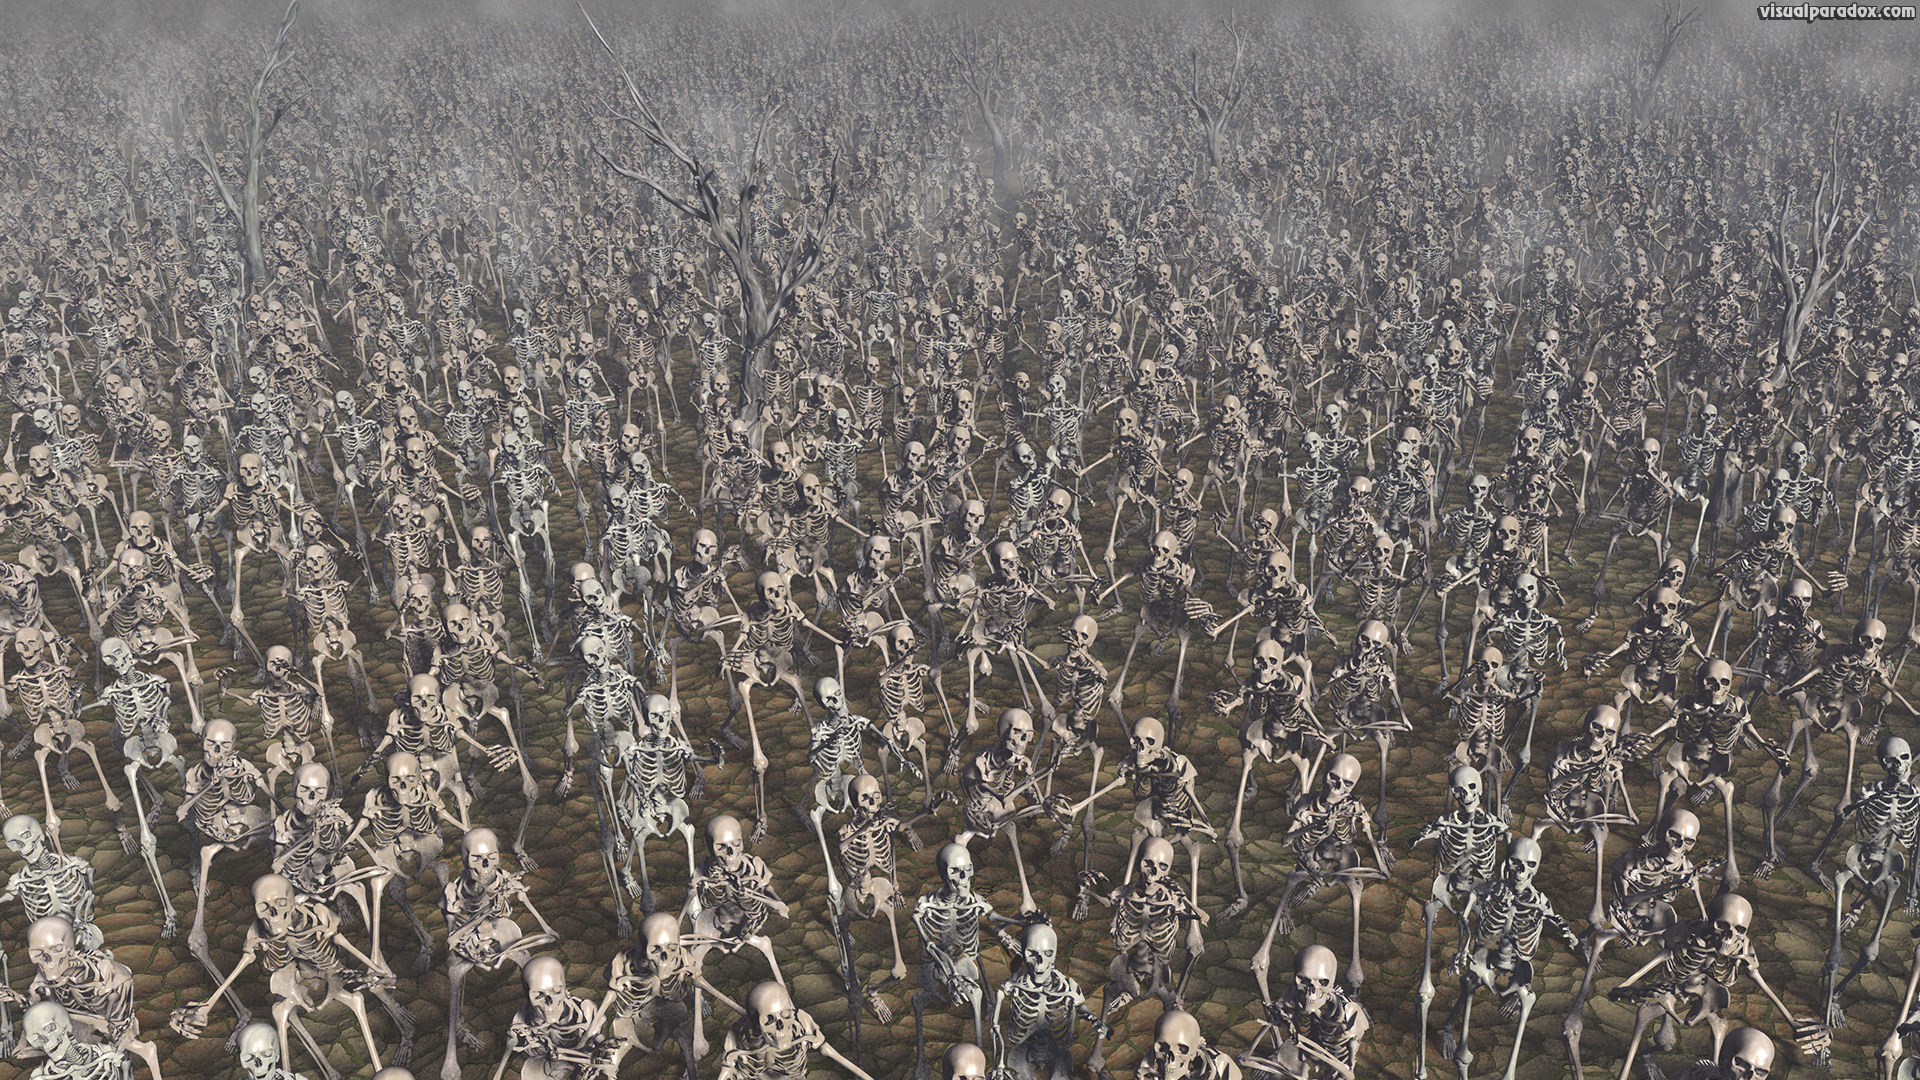 Skeletons, march, zombie, bones, skull, army, marching, crowd, chase, zombies, skeleton, attack, 3d, wallpaper